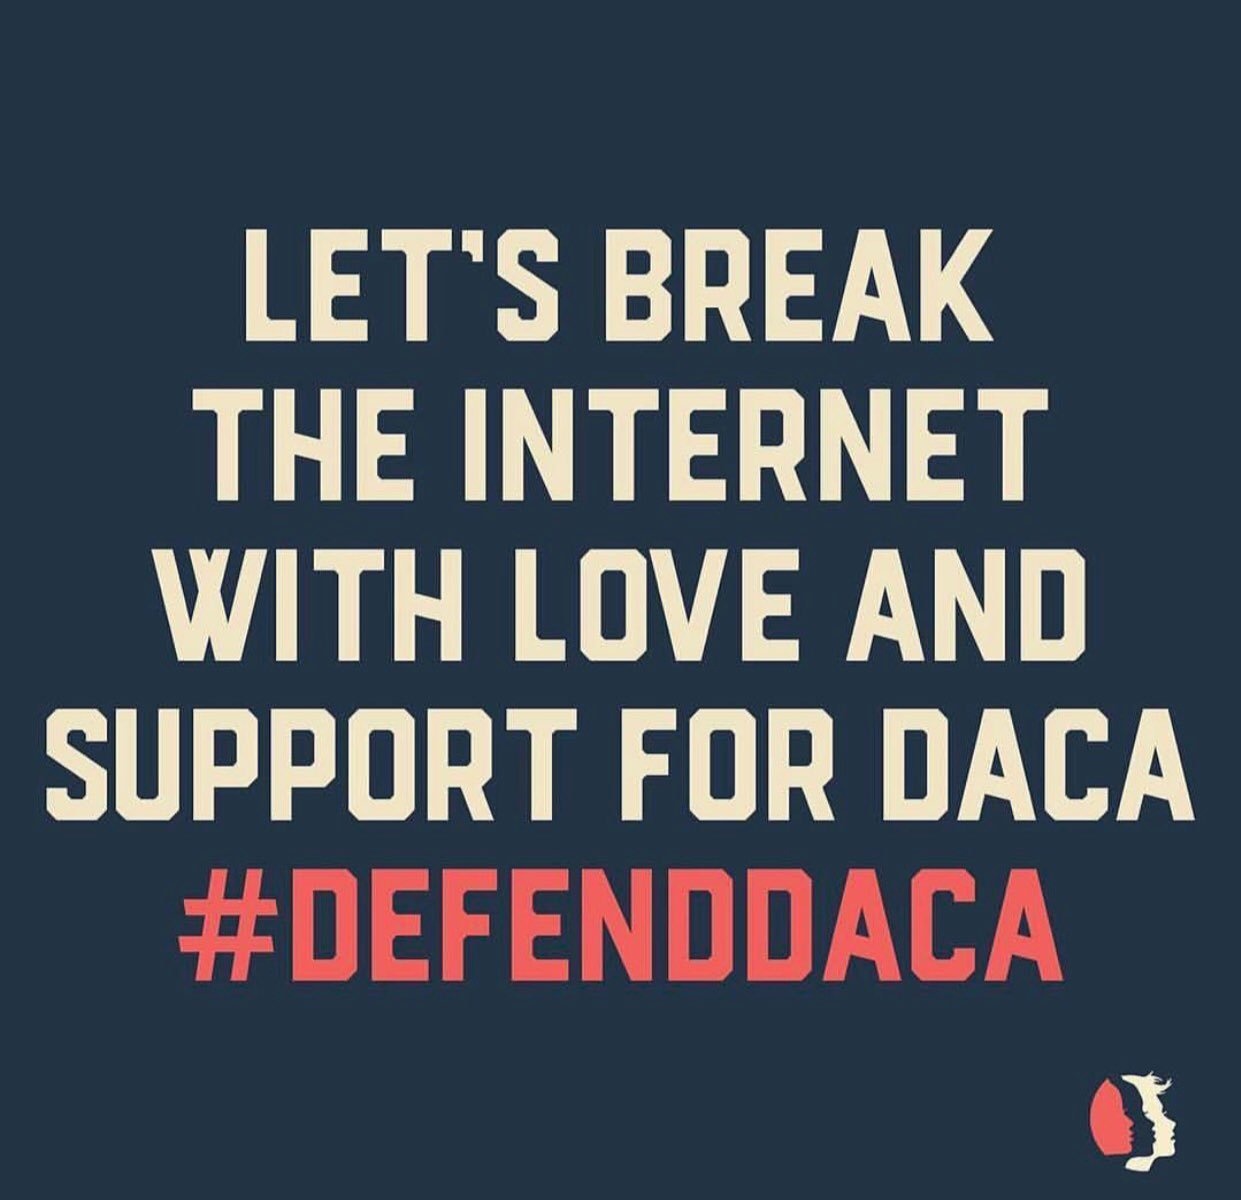 I stand with the Dreamers. #DefendDACA https://t.co/WRPi12Eeoj https://t.co/LhuQFq2i46